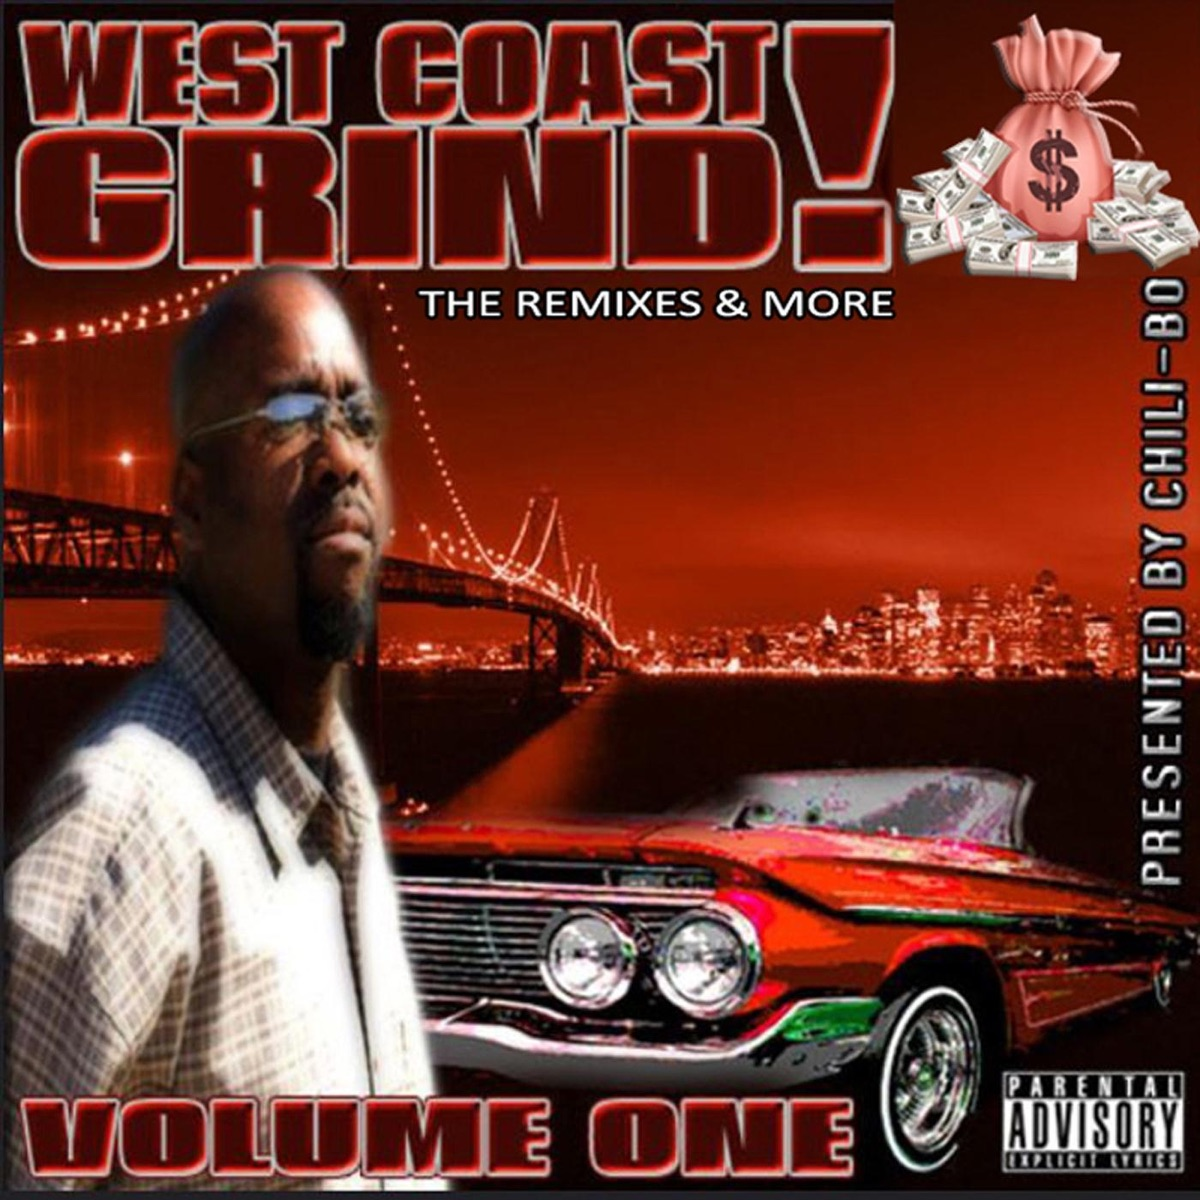 West Coast Grind The Remixes  More Vol 1 Chili-Bo CD cover